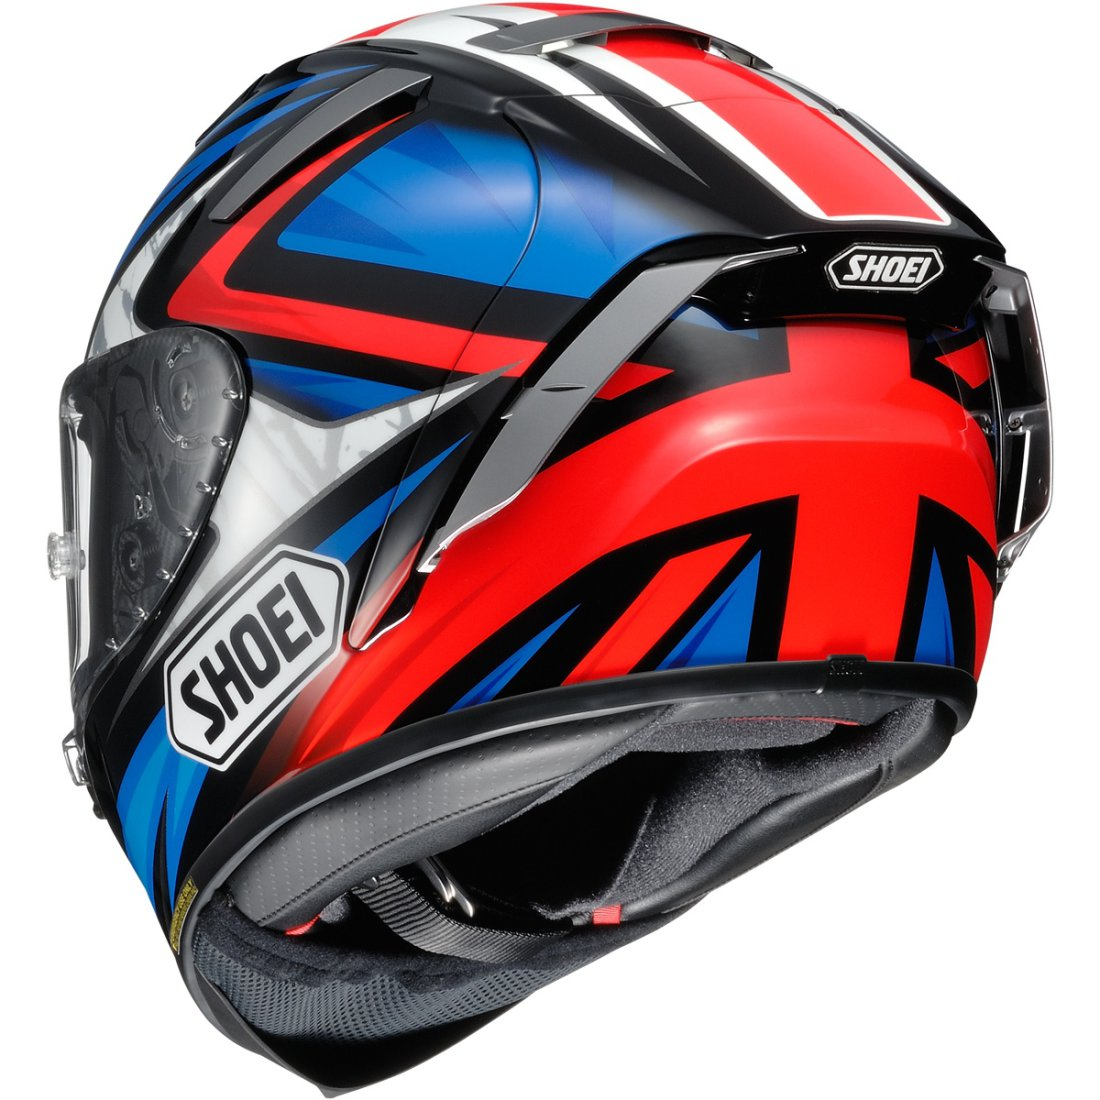 shoei x spirit 3 bradley 3 tc 1 helmet motocard. Black Bedroom Furniture Sets. Home Design Ideas